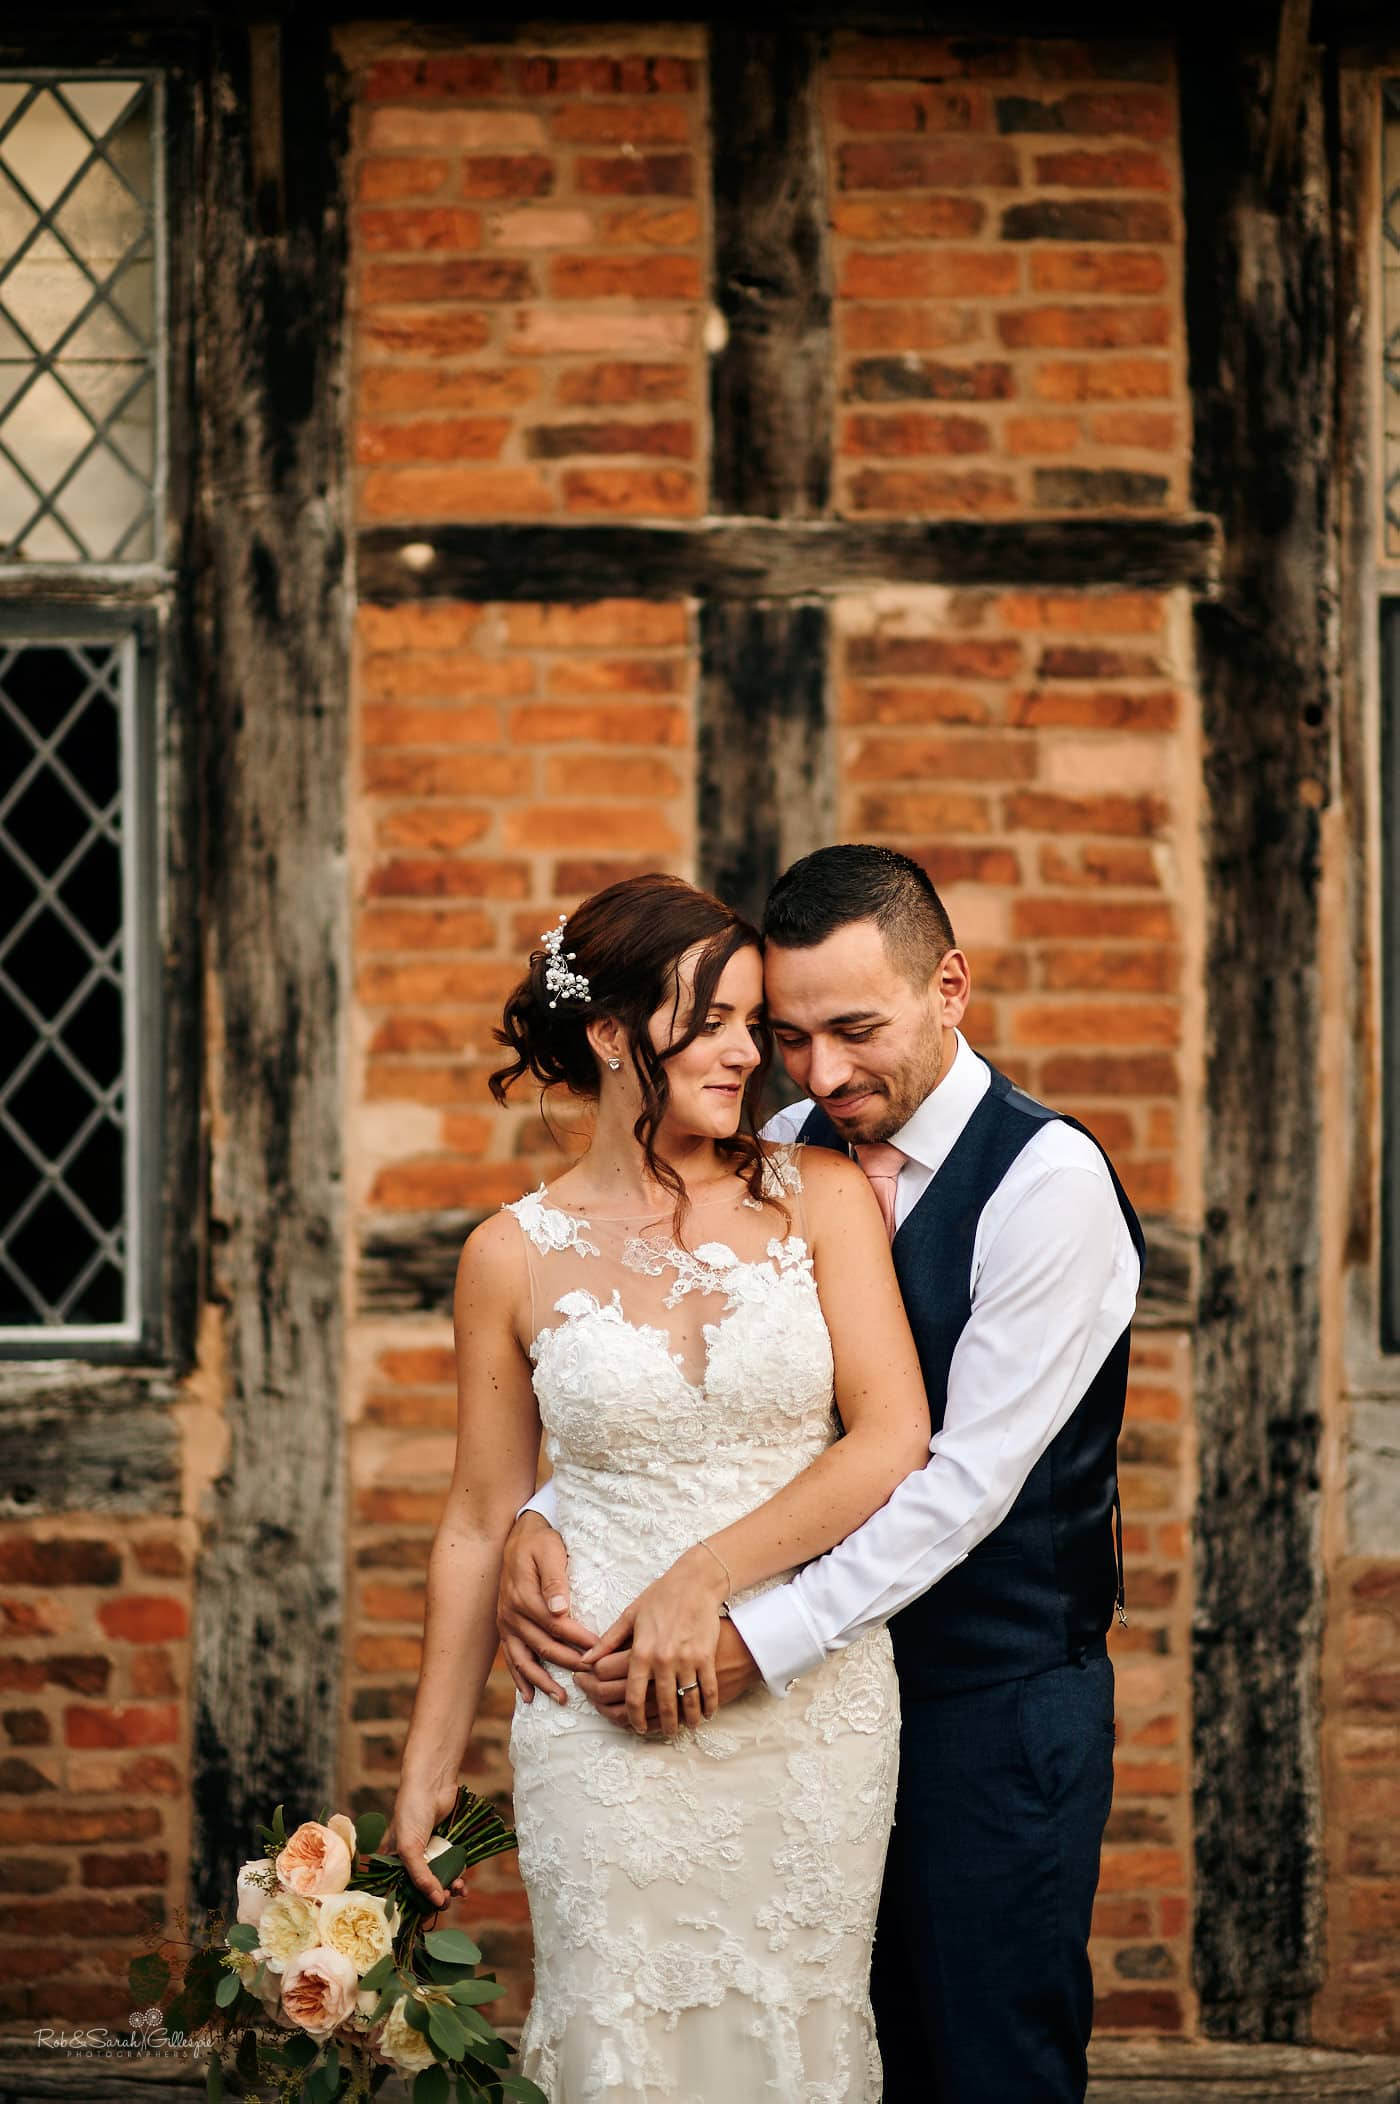 Bride and groom together at Gorcott Hall wedding